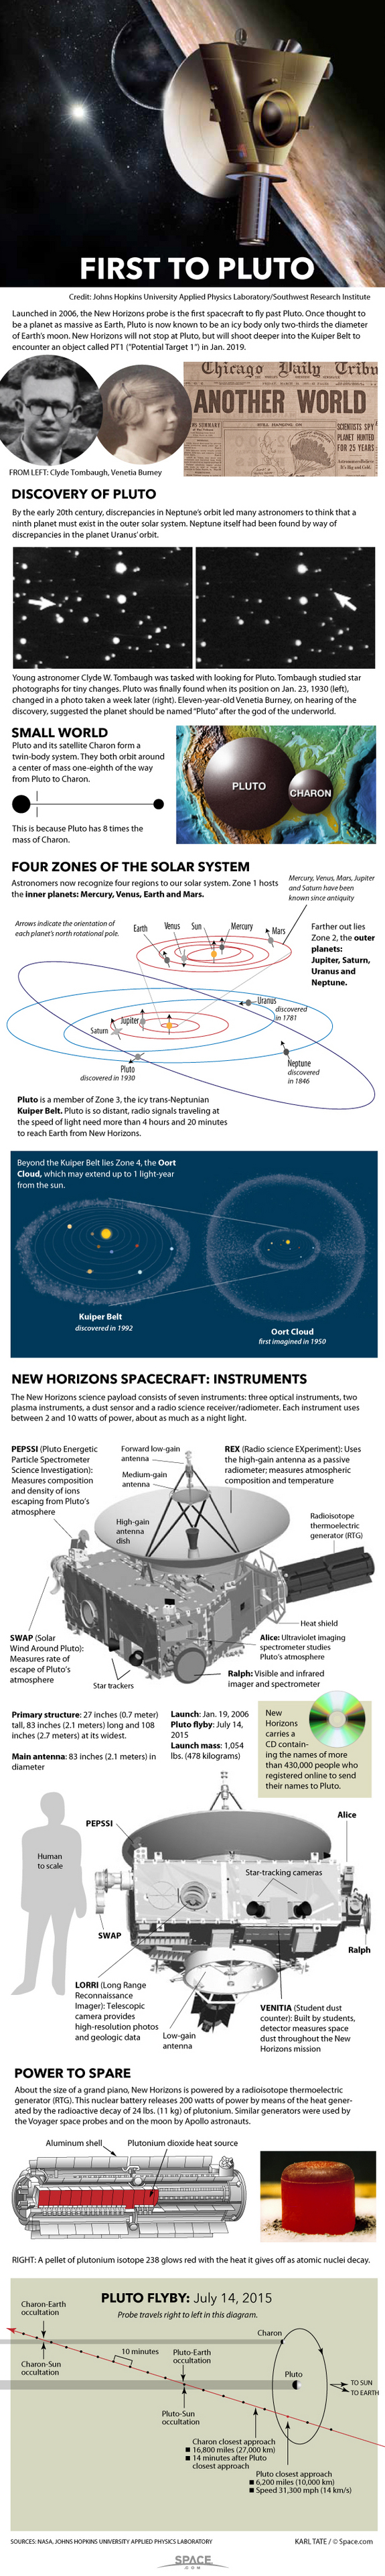 How NASA's New Horizons Mission to Pluto Works (© space.com)